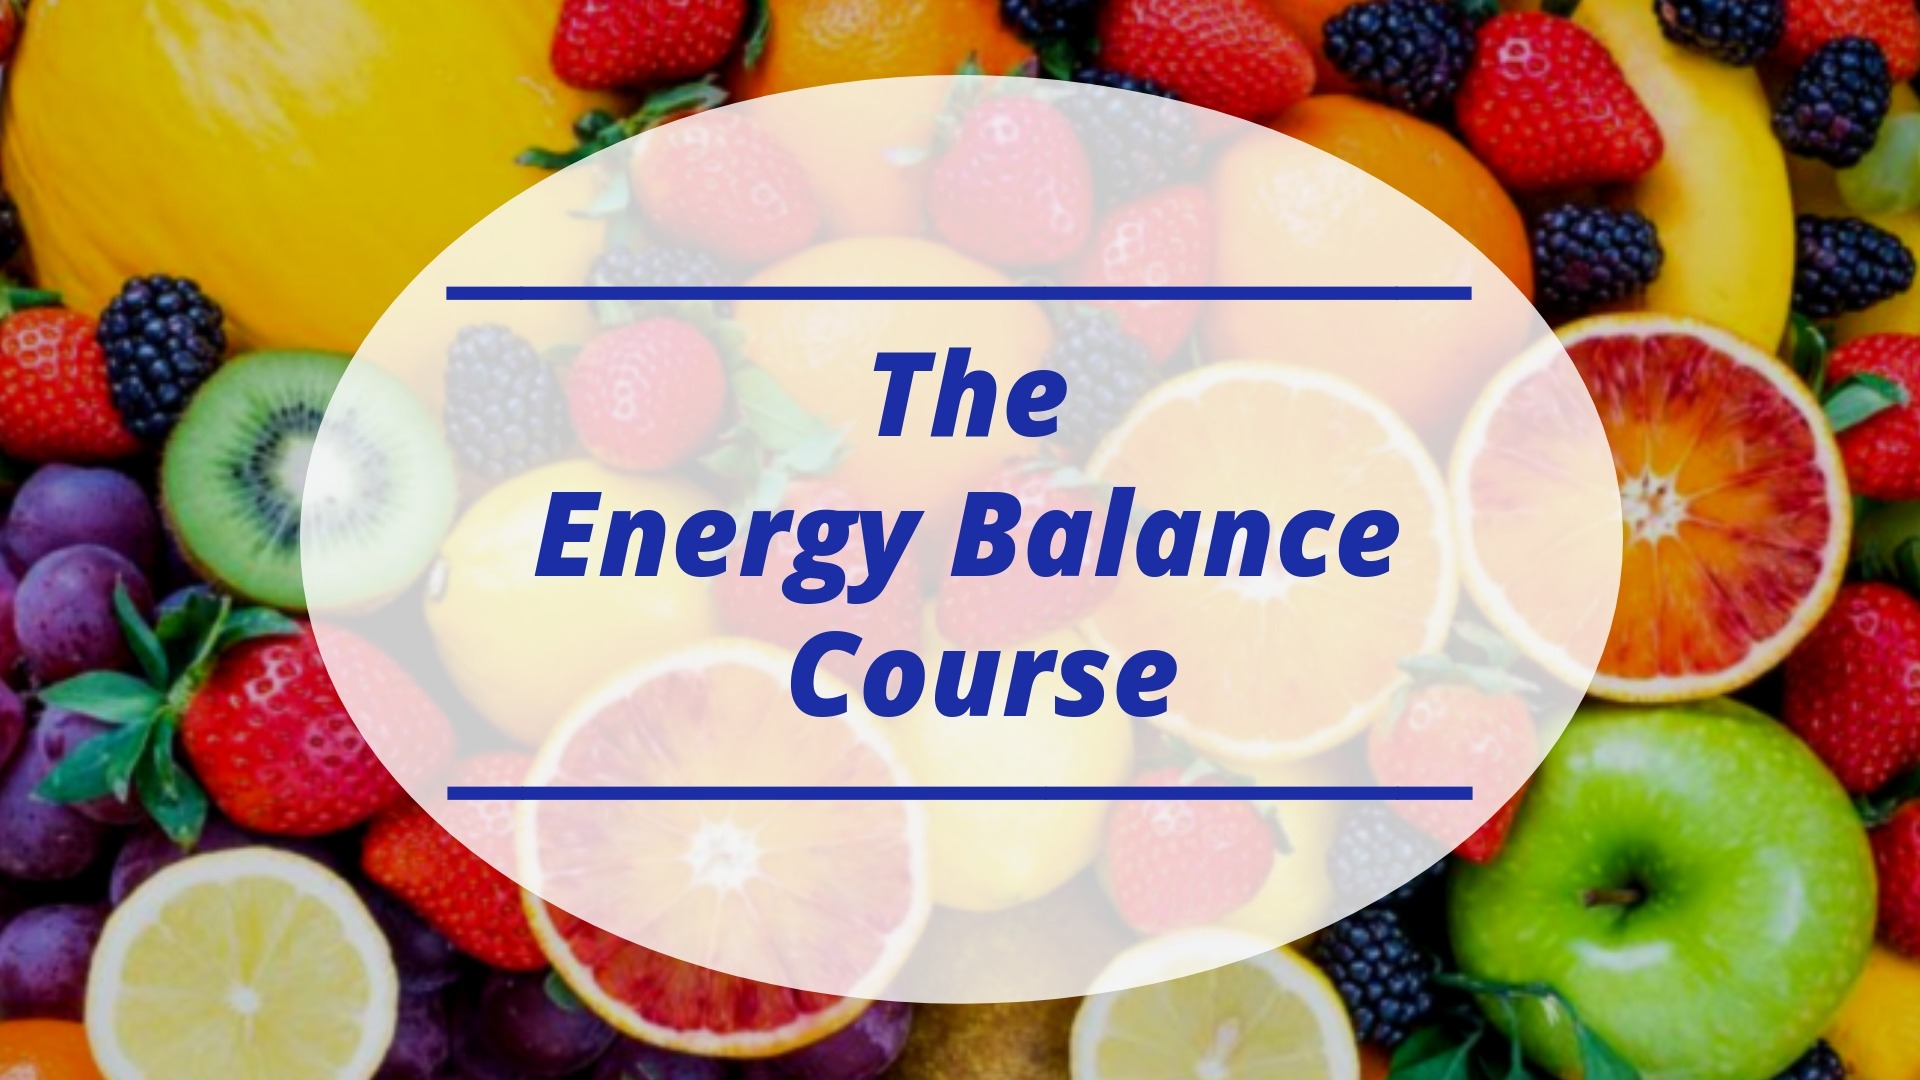 The Energy Balance Course